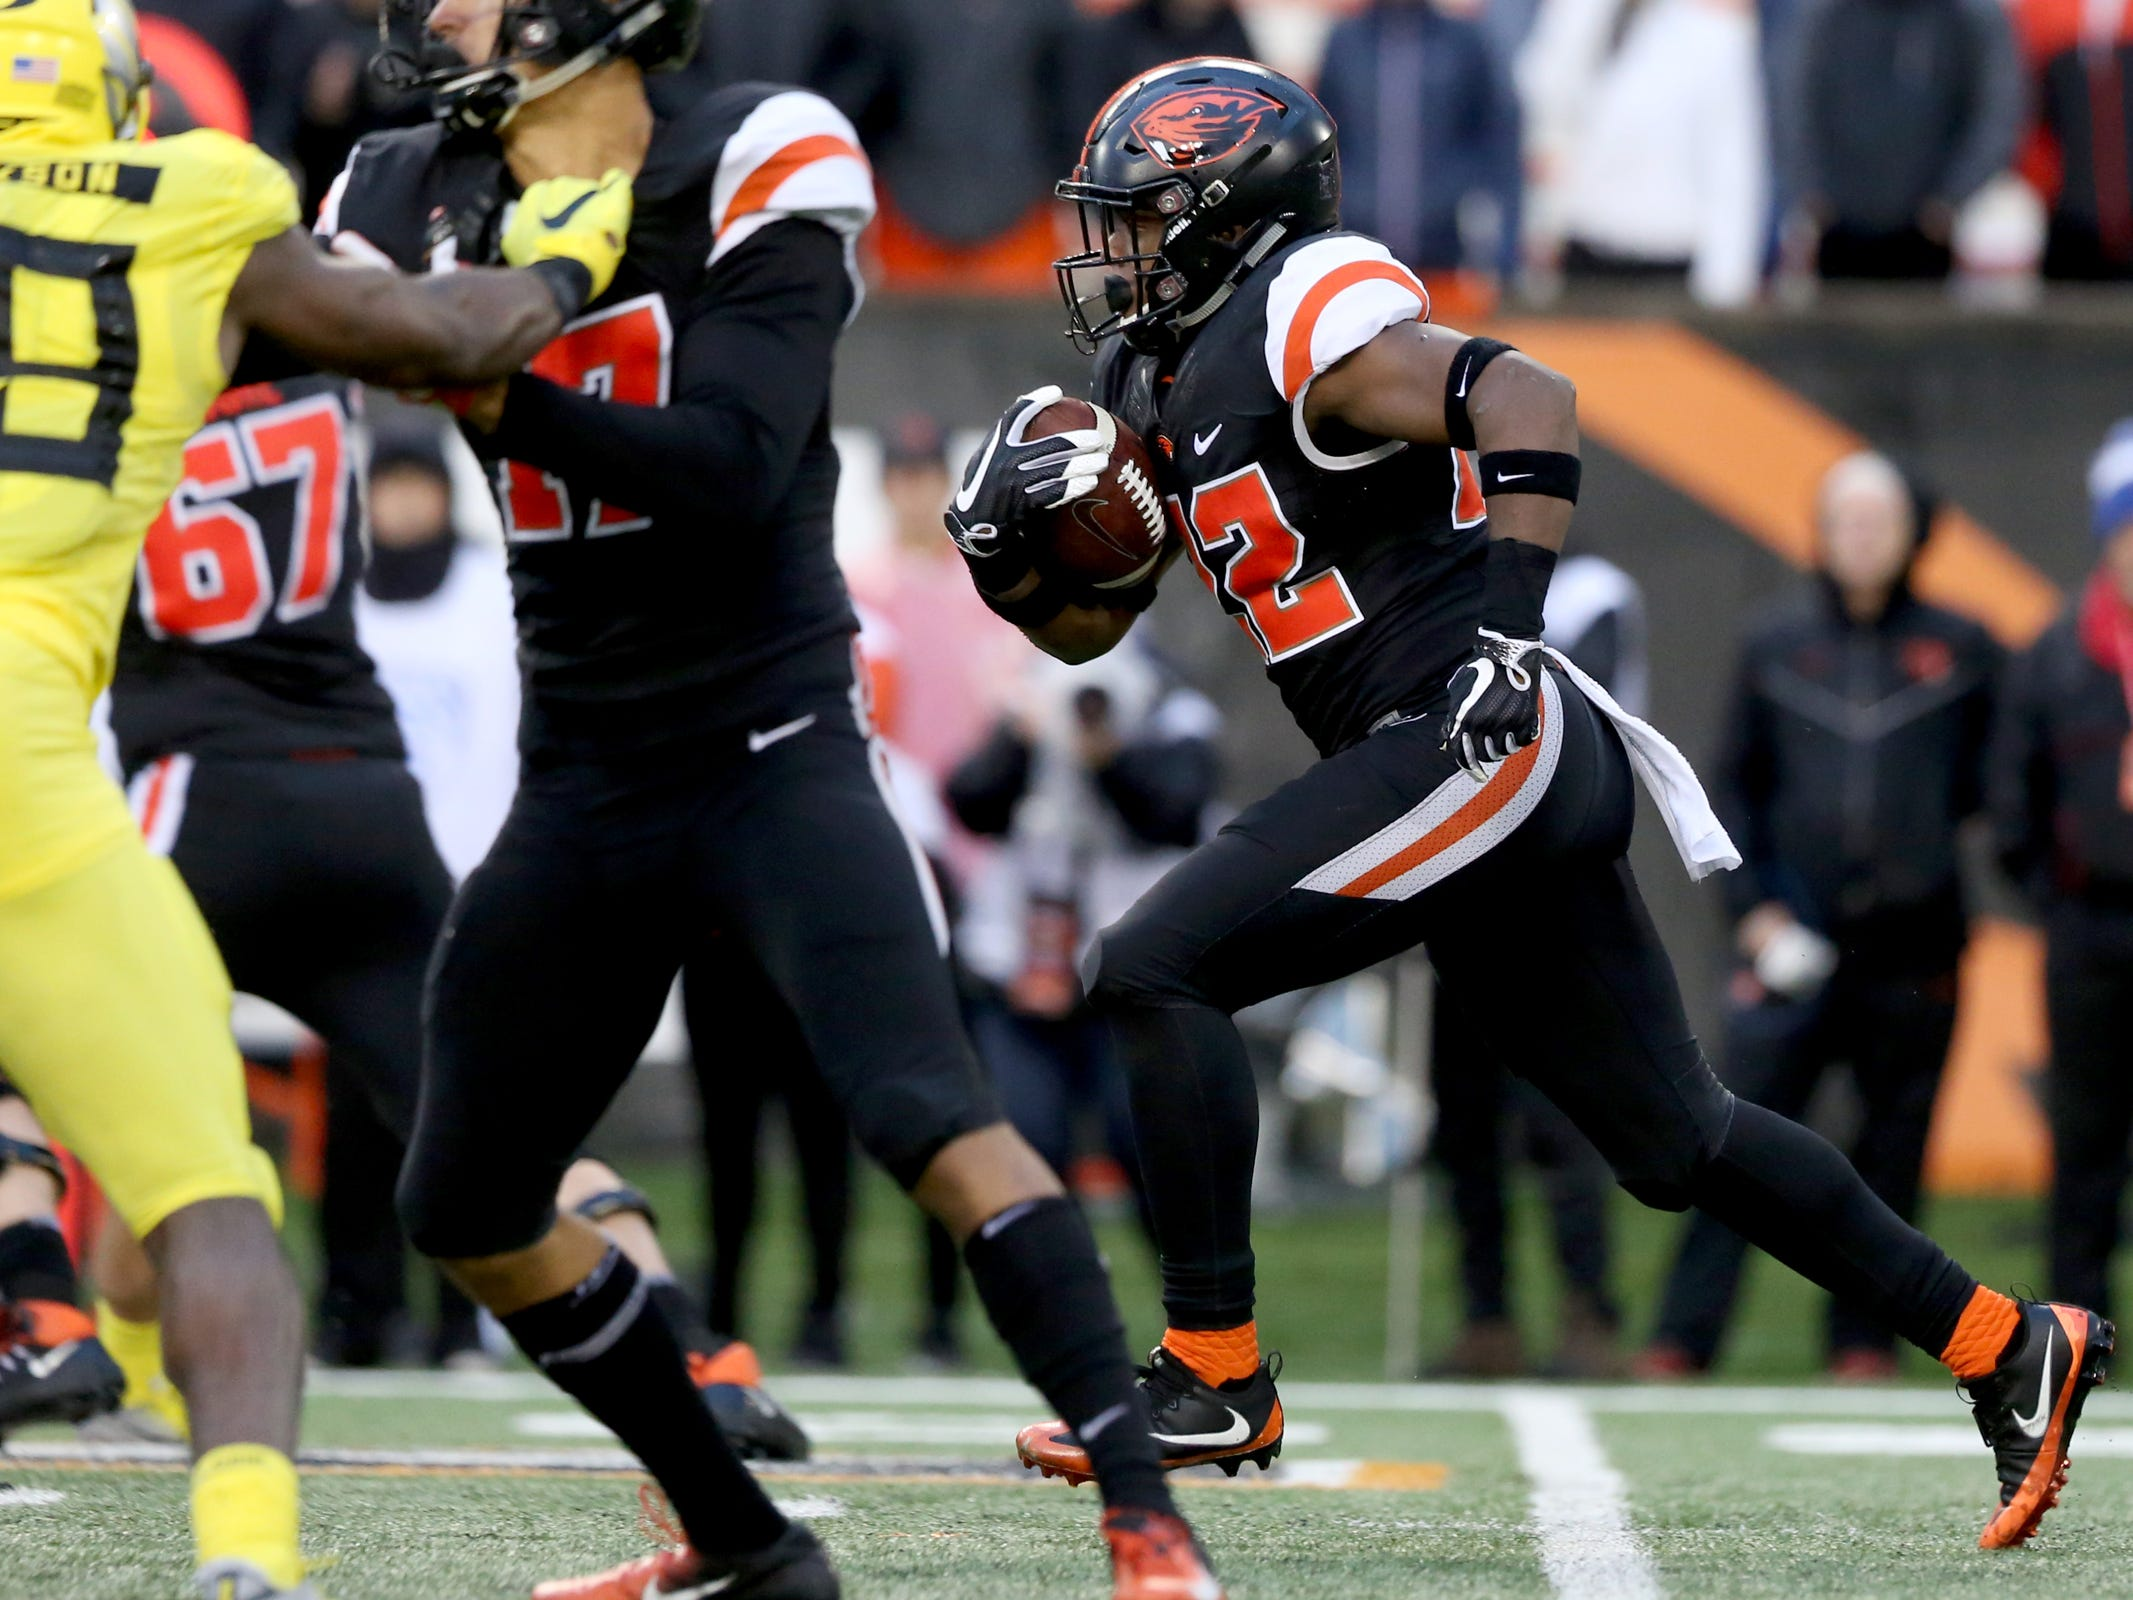 Oregon State's Jermar Jefferson (22) rushes down the middle in the Oregon vs. Oregon State Civil war football game at Oregon State University in Corvallis on Friday, Nov. 23, 2018. The Ducks won the game 55-15.